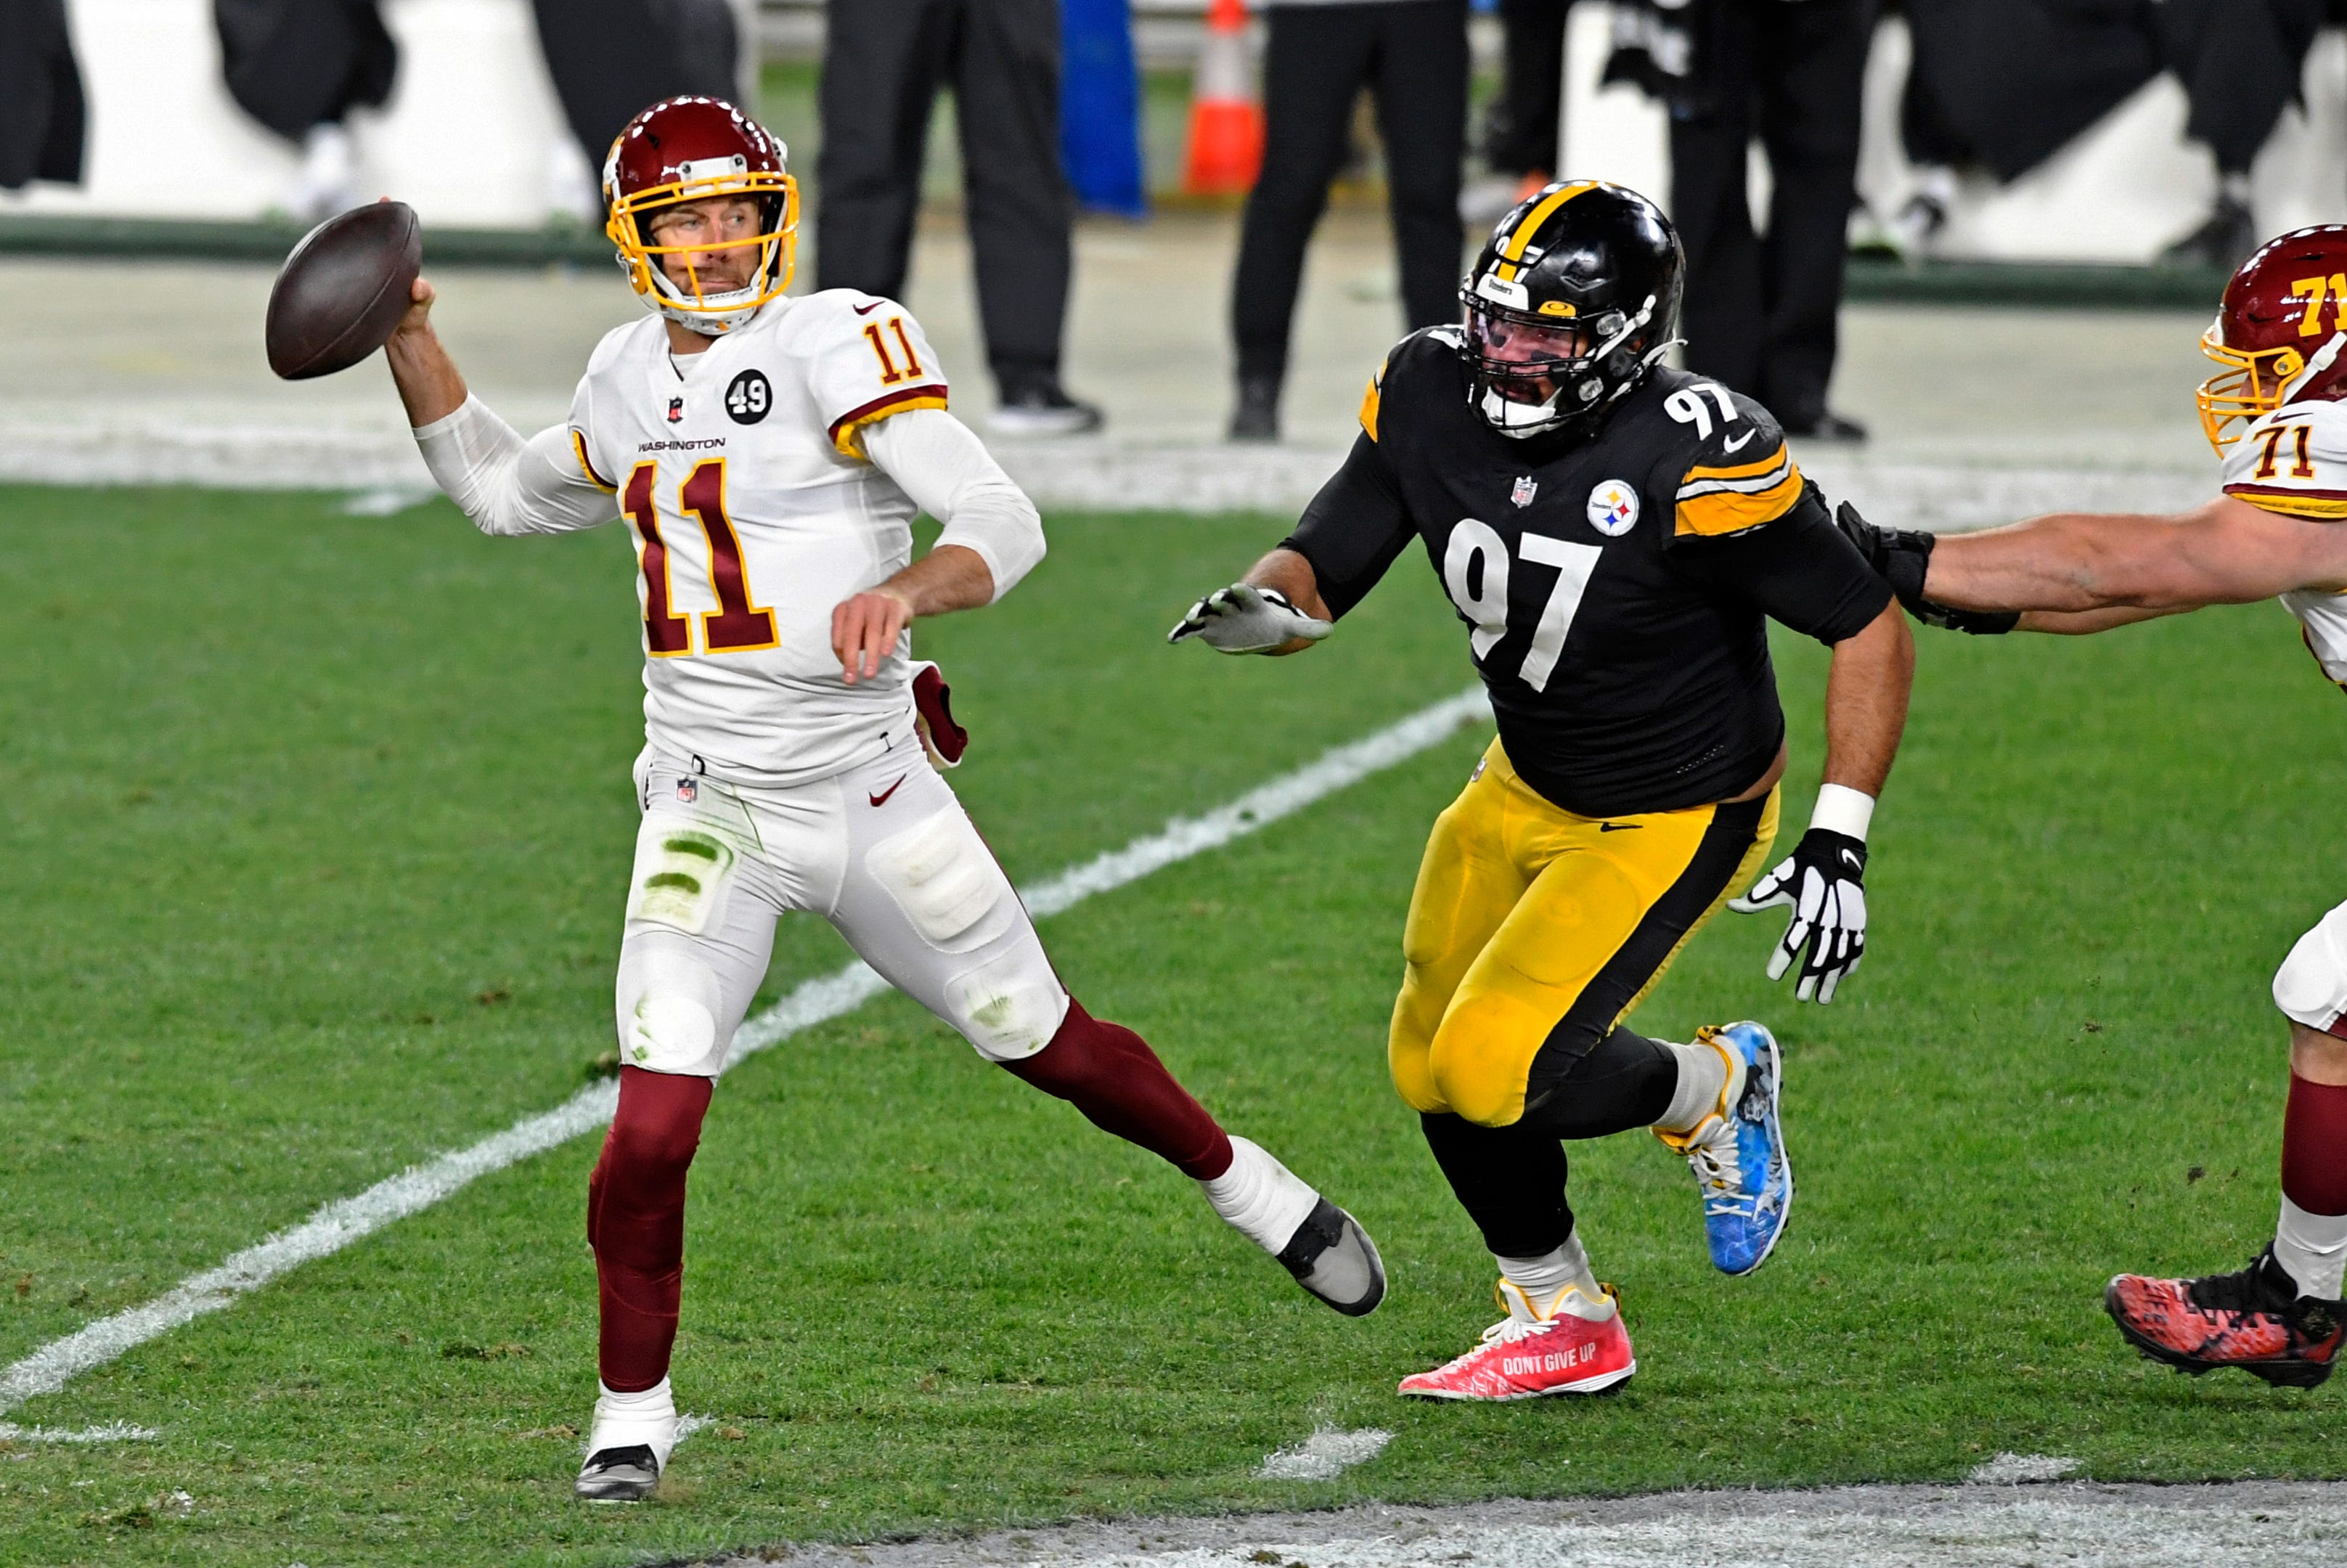 Undefeated no more: Steelers' unbeaten run comes to an end as Washington rallies to wild win